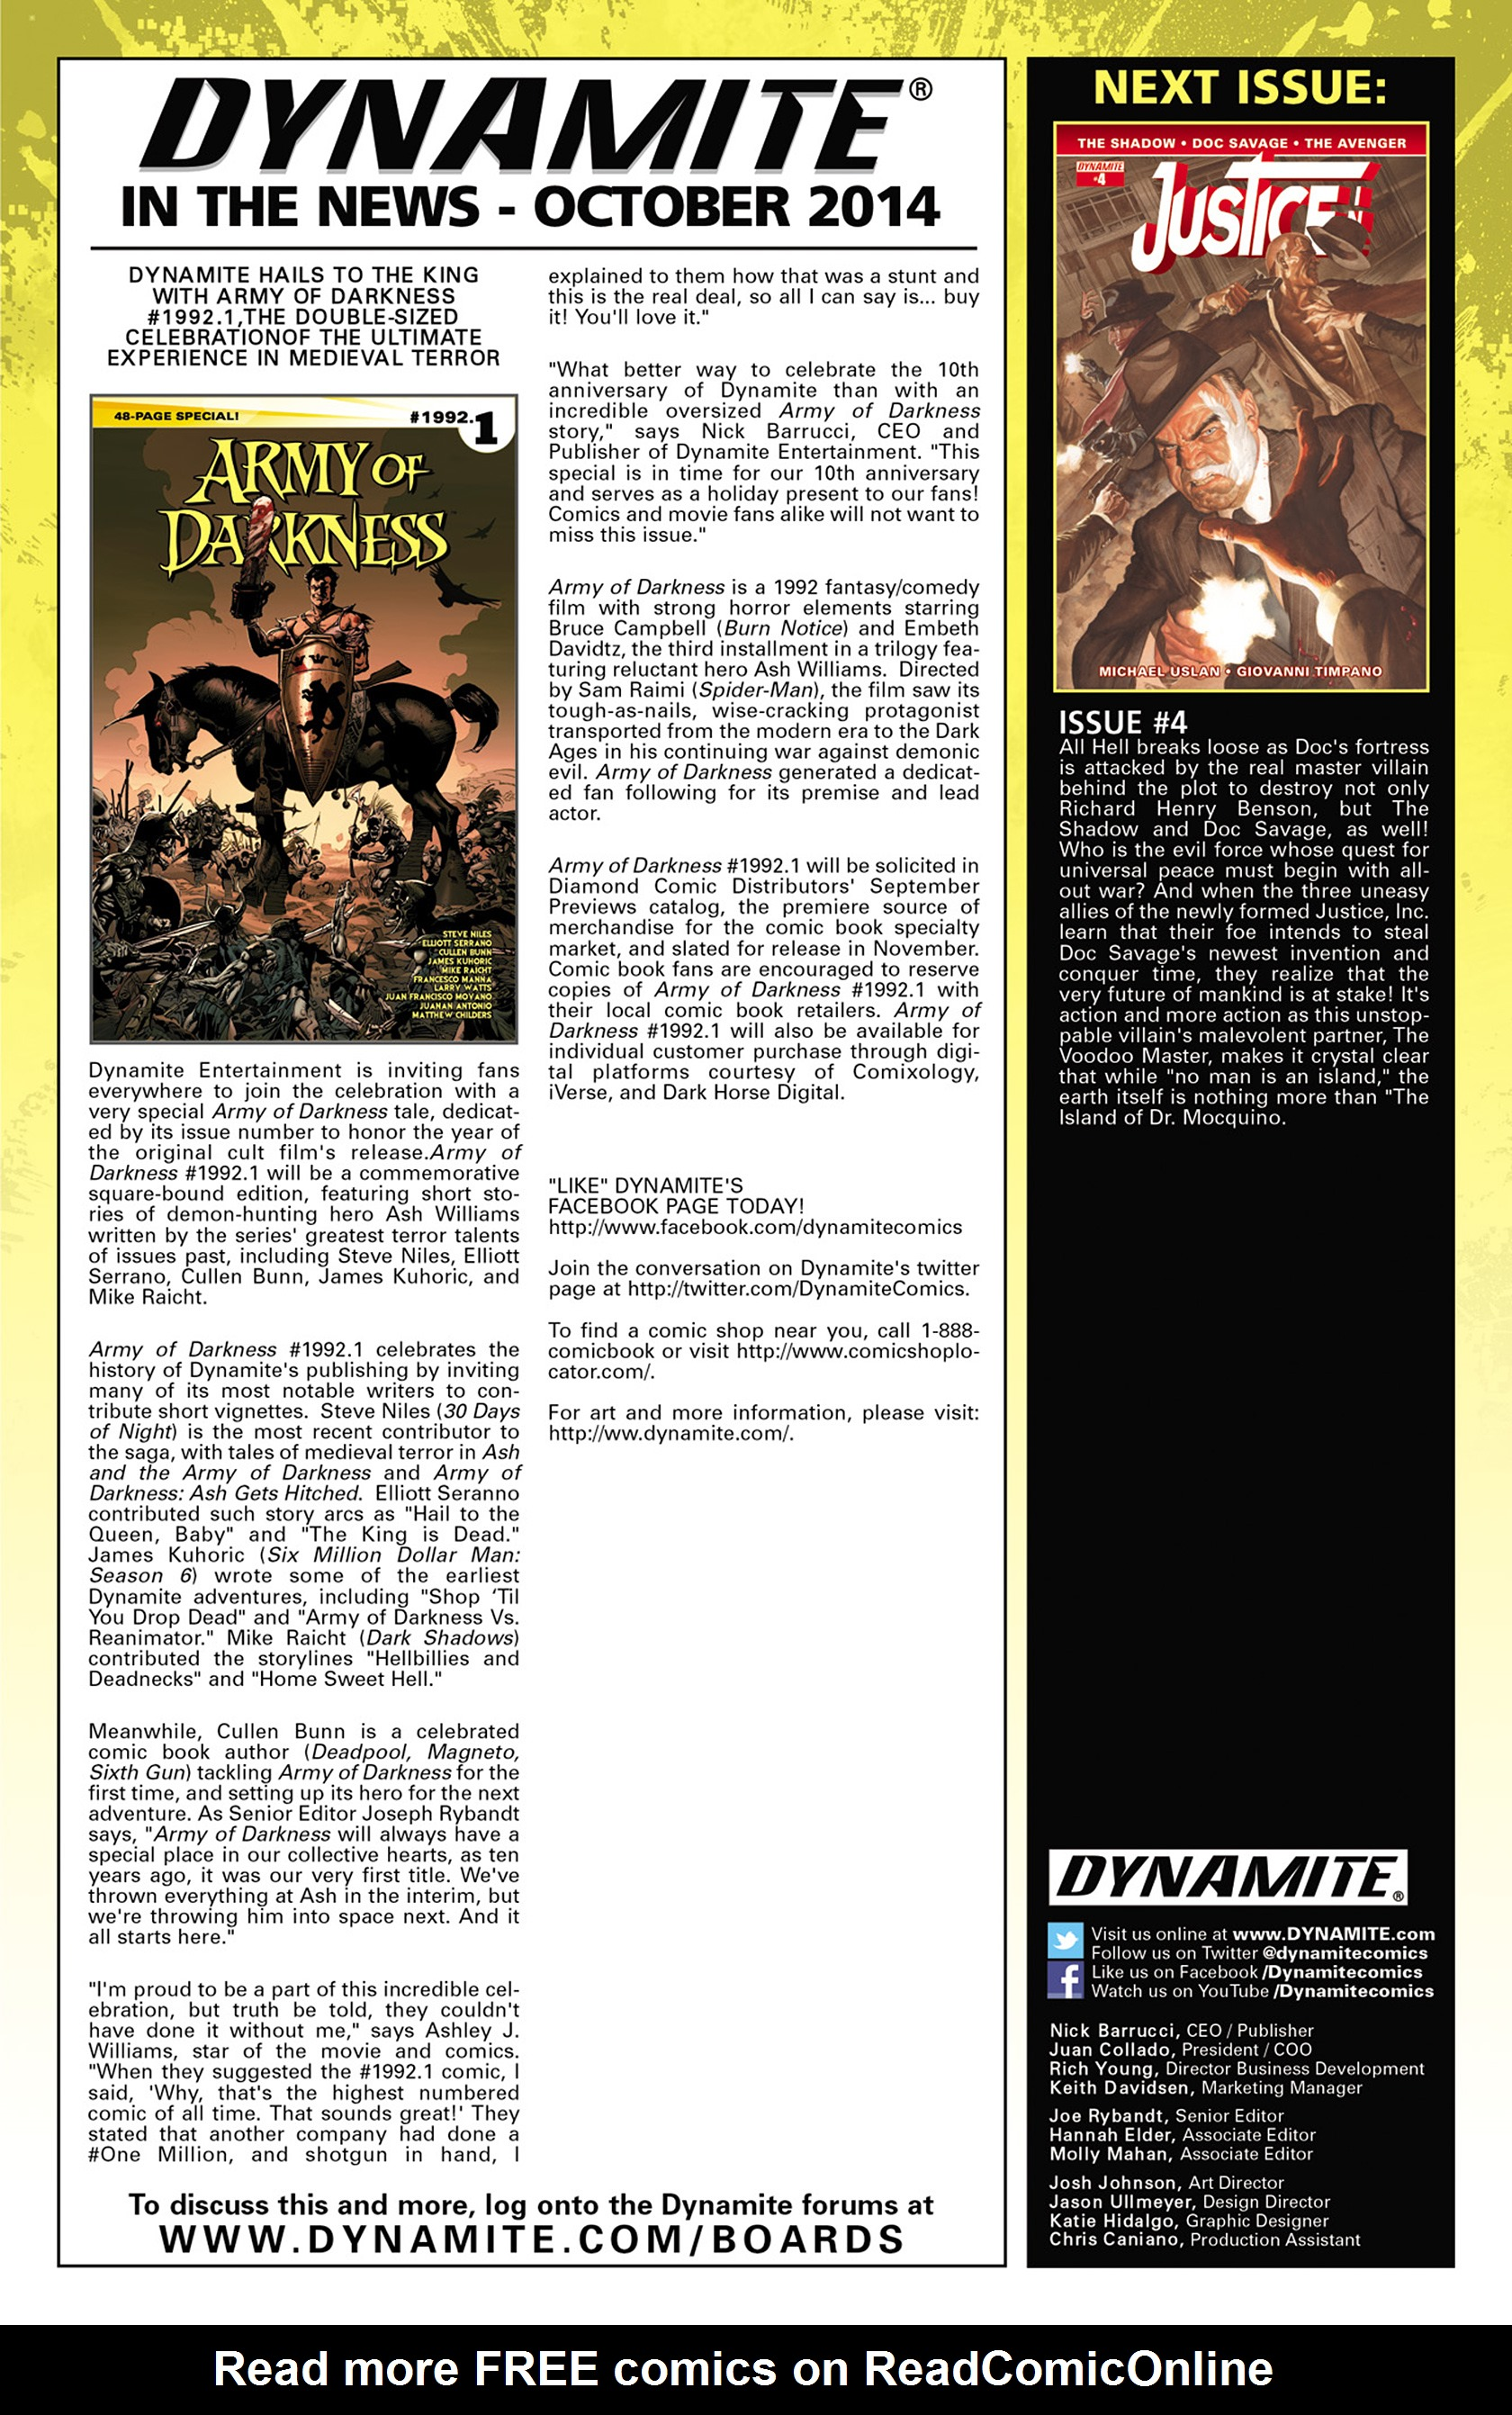 Read online Justice, Inc. comic -  Issue #3 - 30